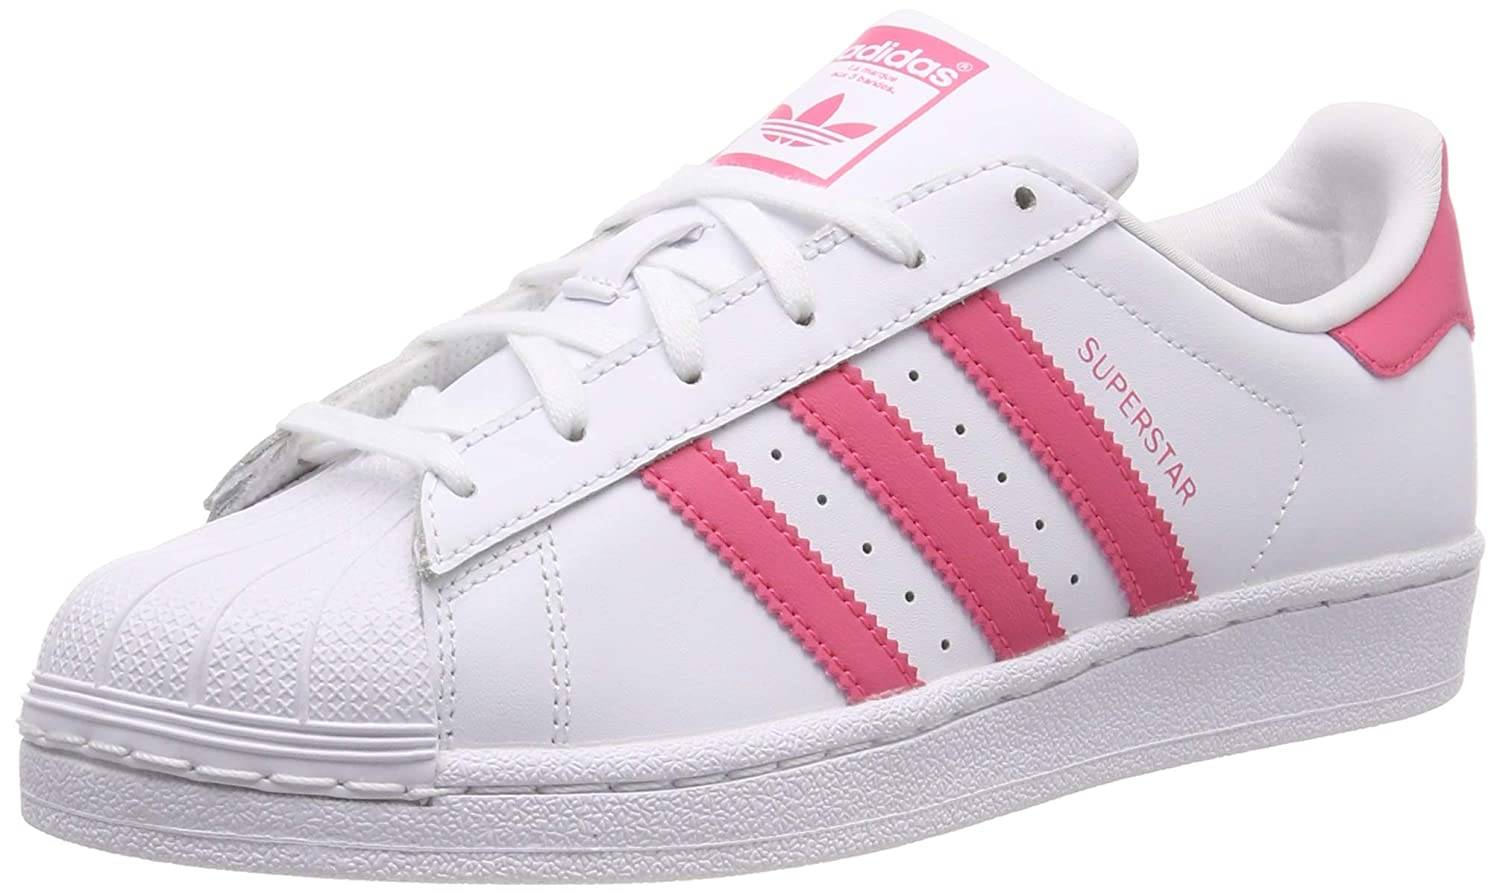 adidas Originals Superstar J WhiteIridescent Leather Youth Trainers Shoes